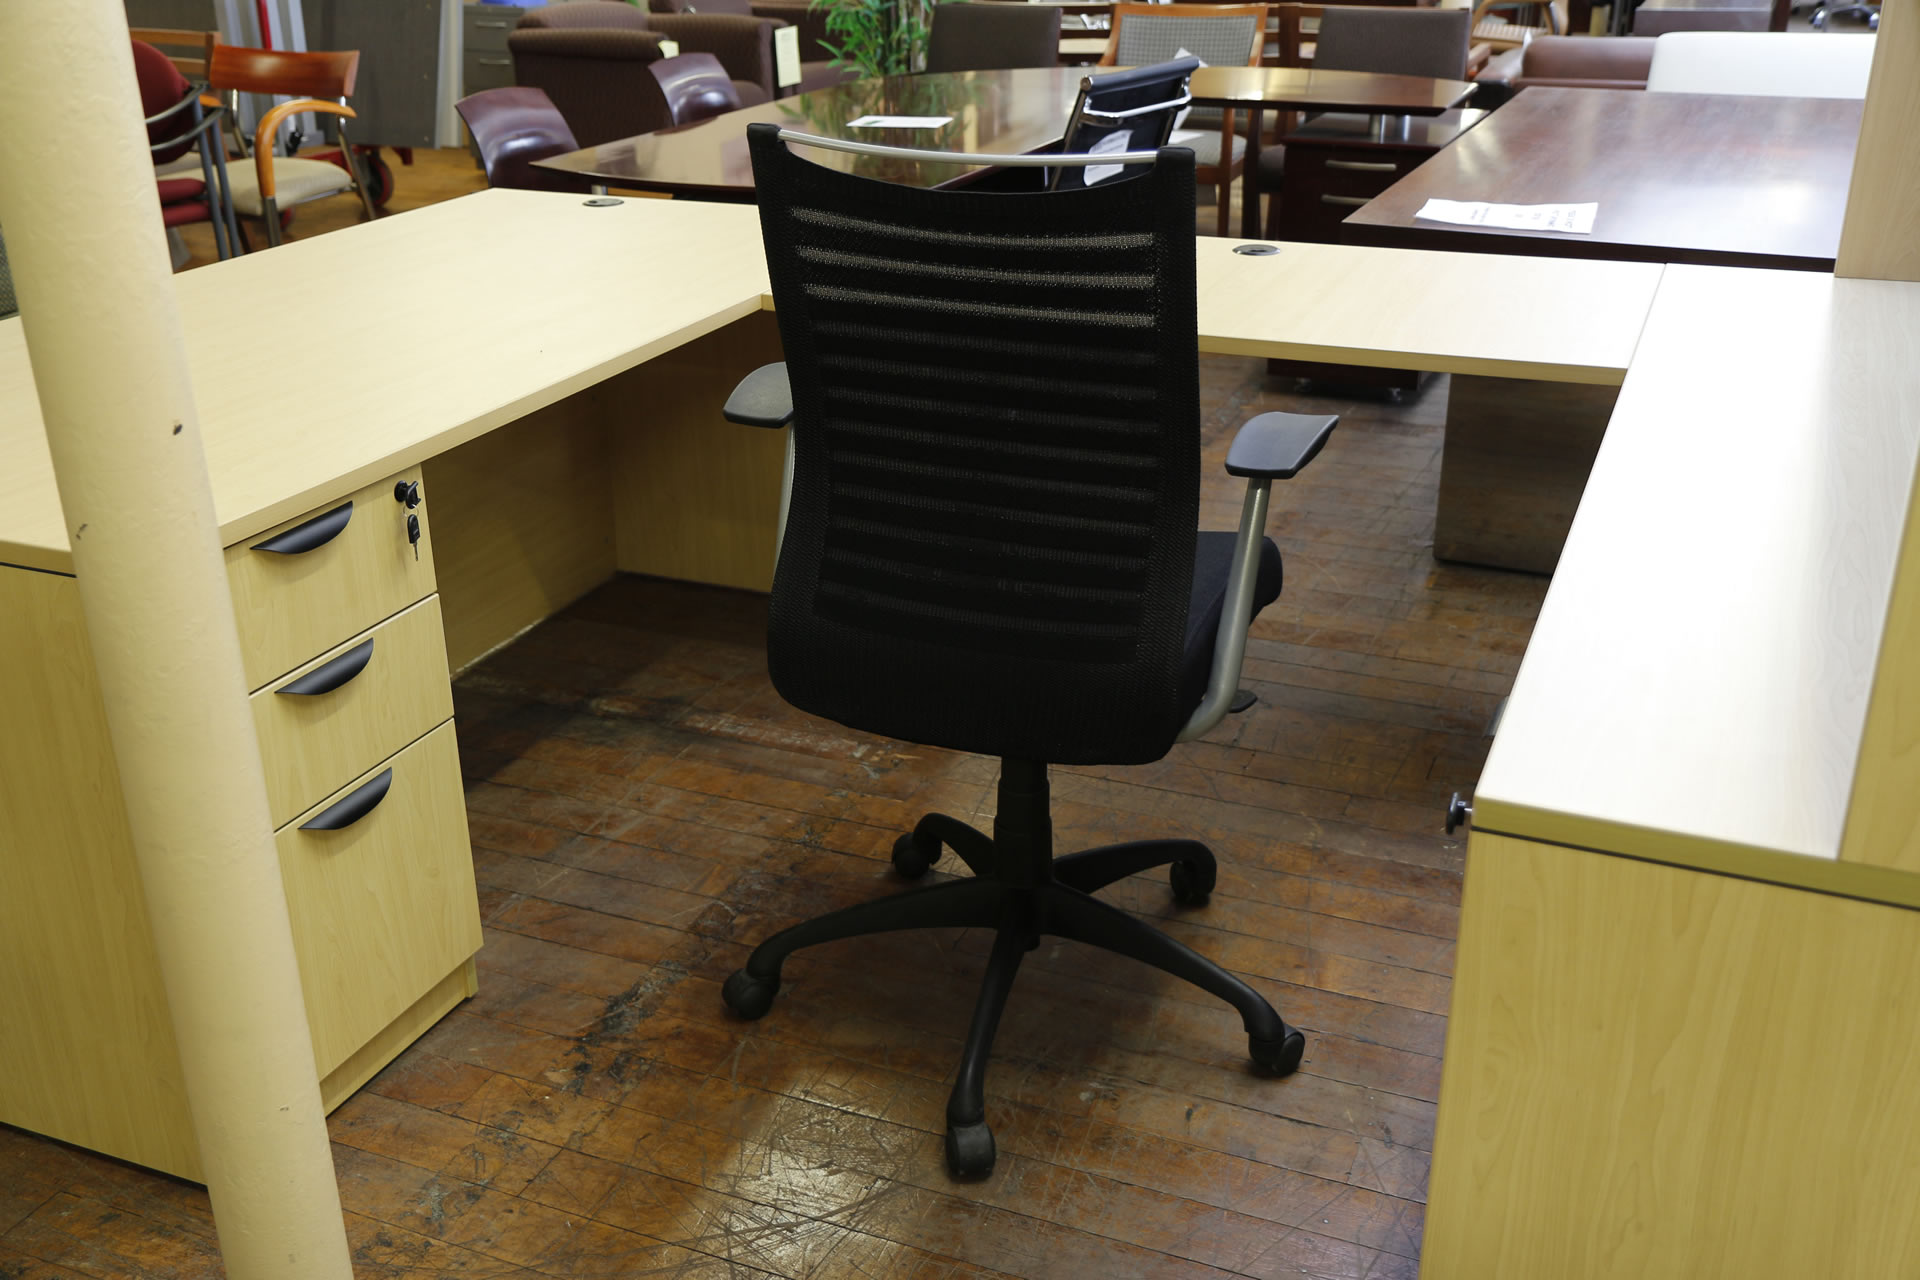 peartreeofficefurniture_peartreeofficefurniture_peartreeofficefurniture_2015-06-18_20-12-03.jpg